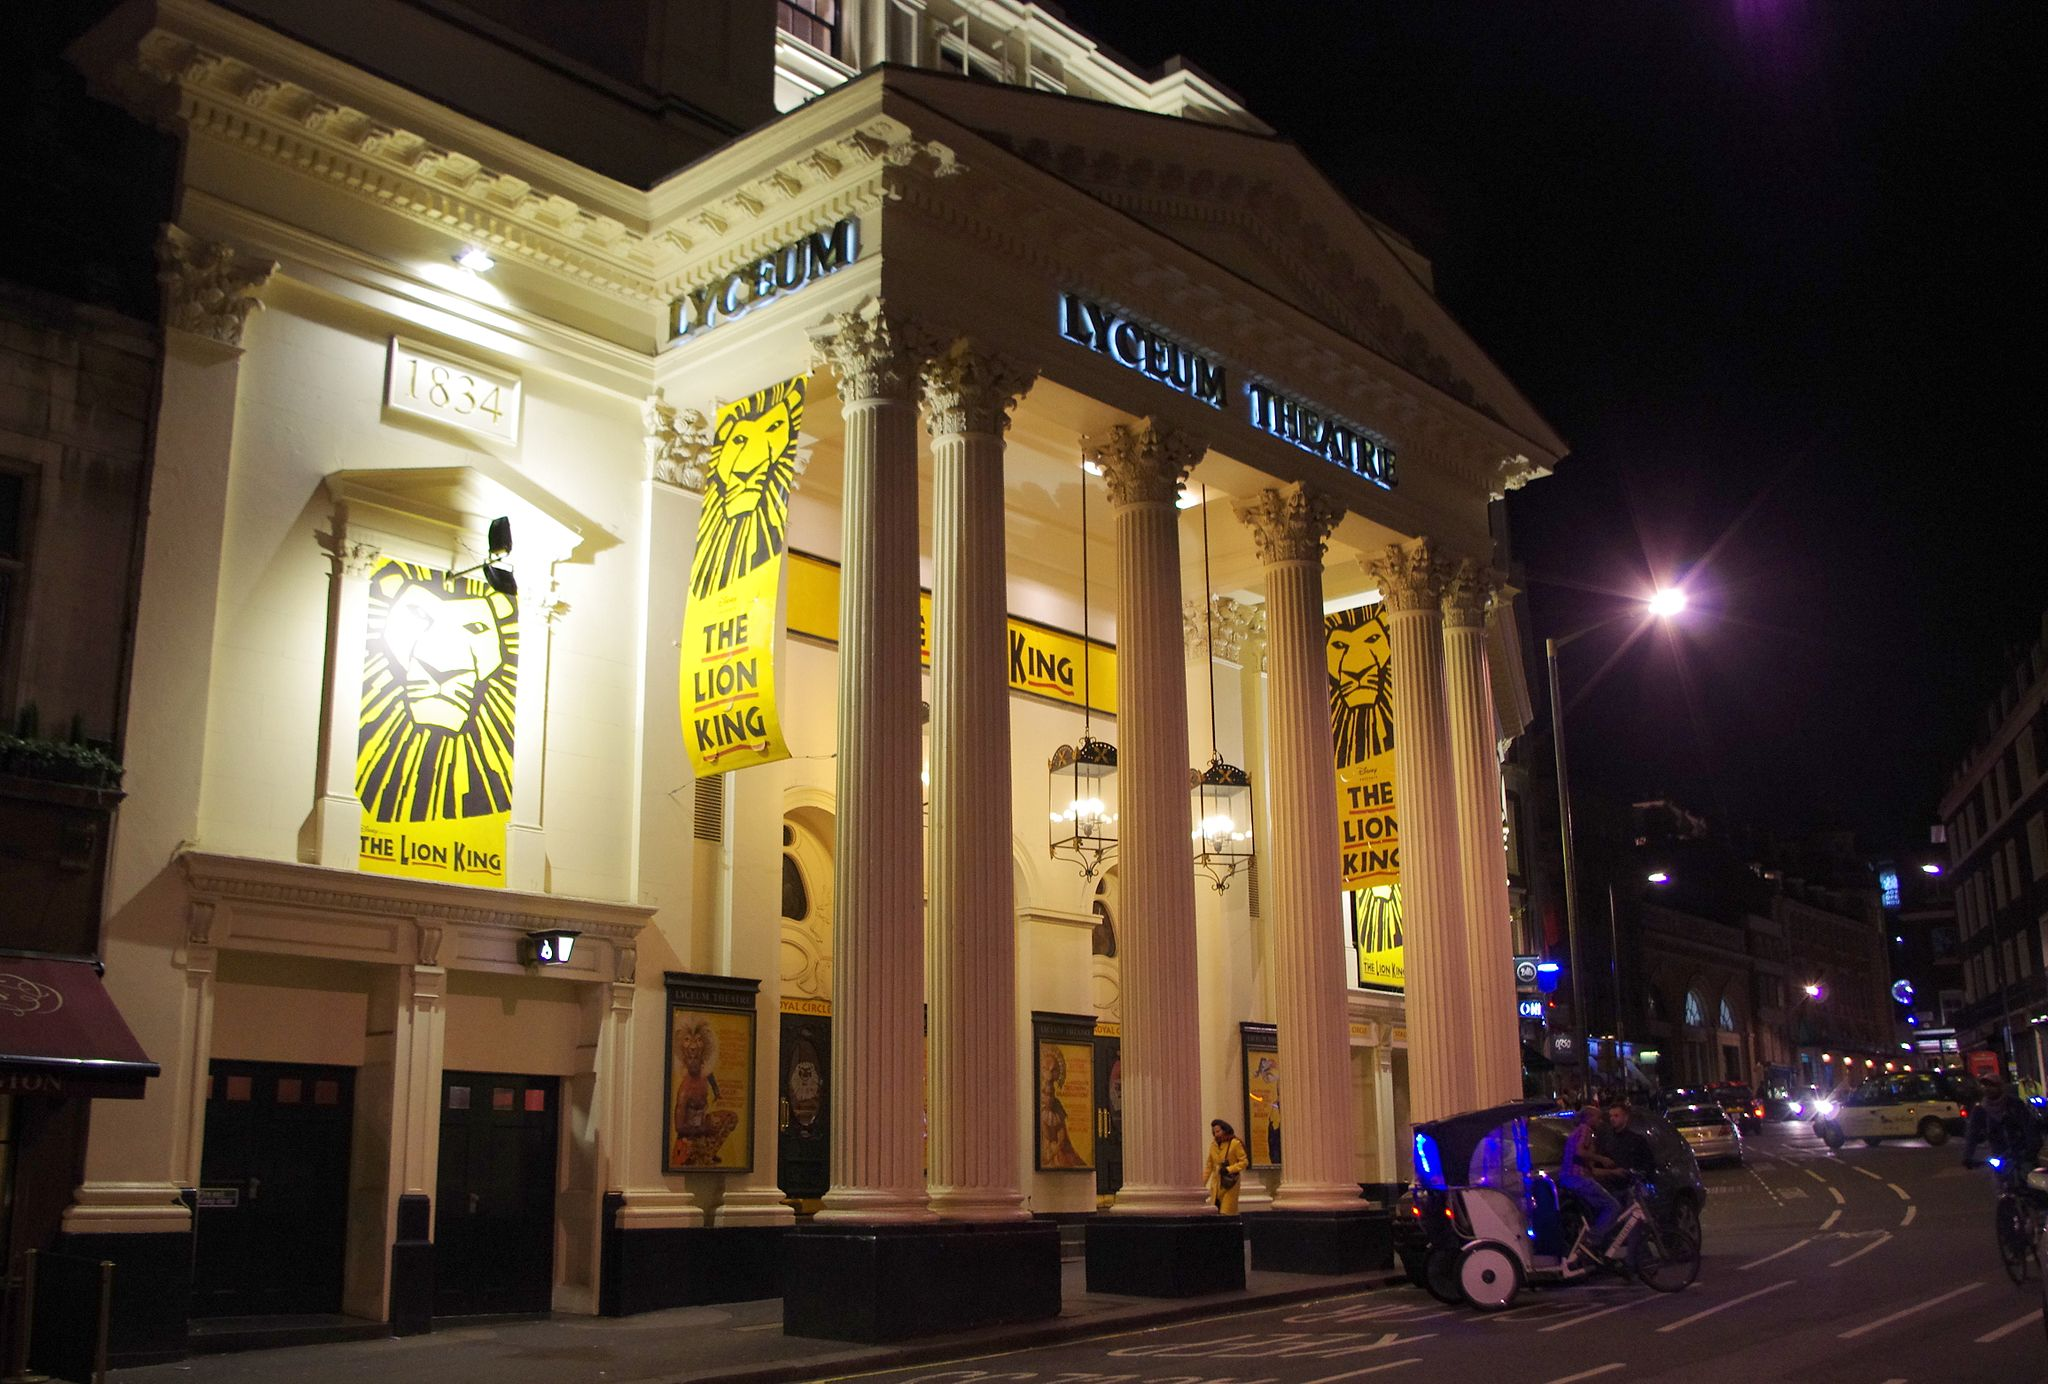 LyceumTheatre-bynight